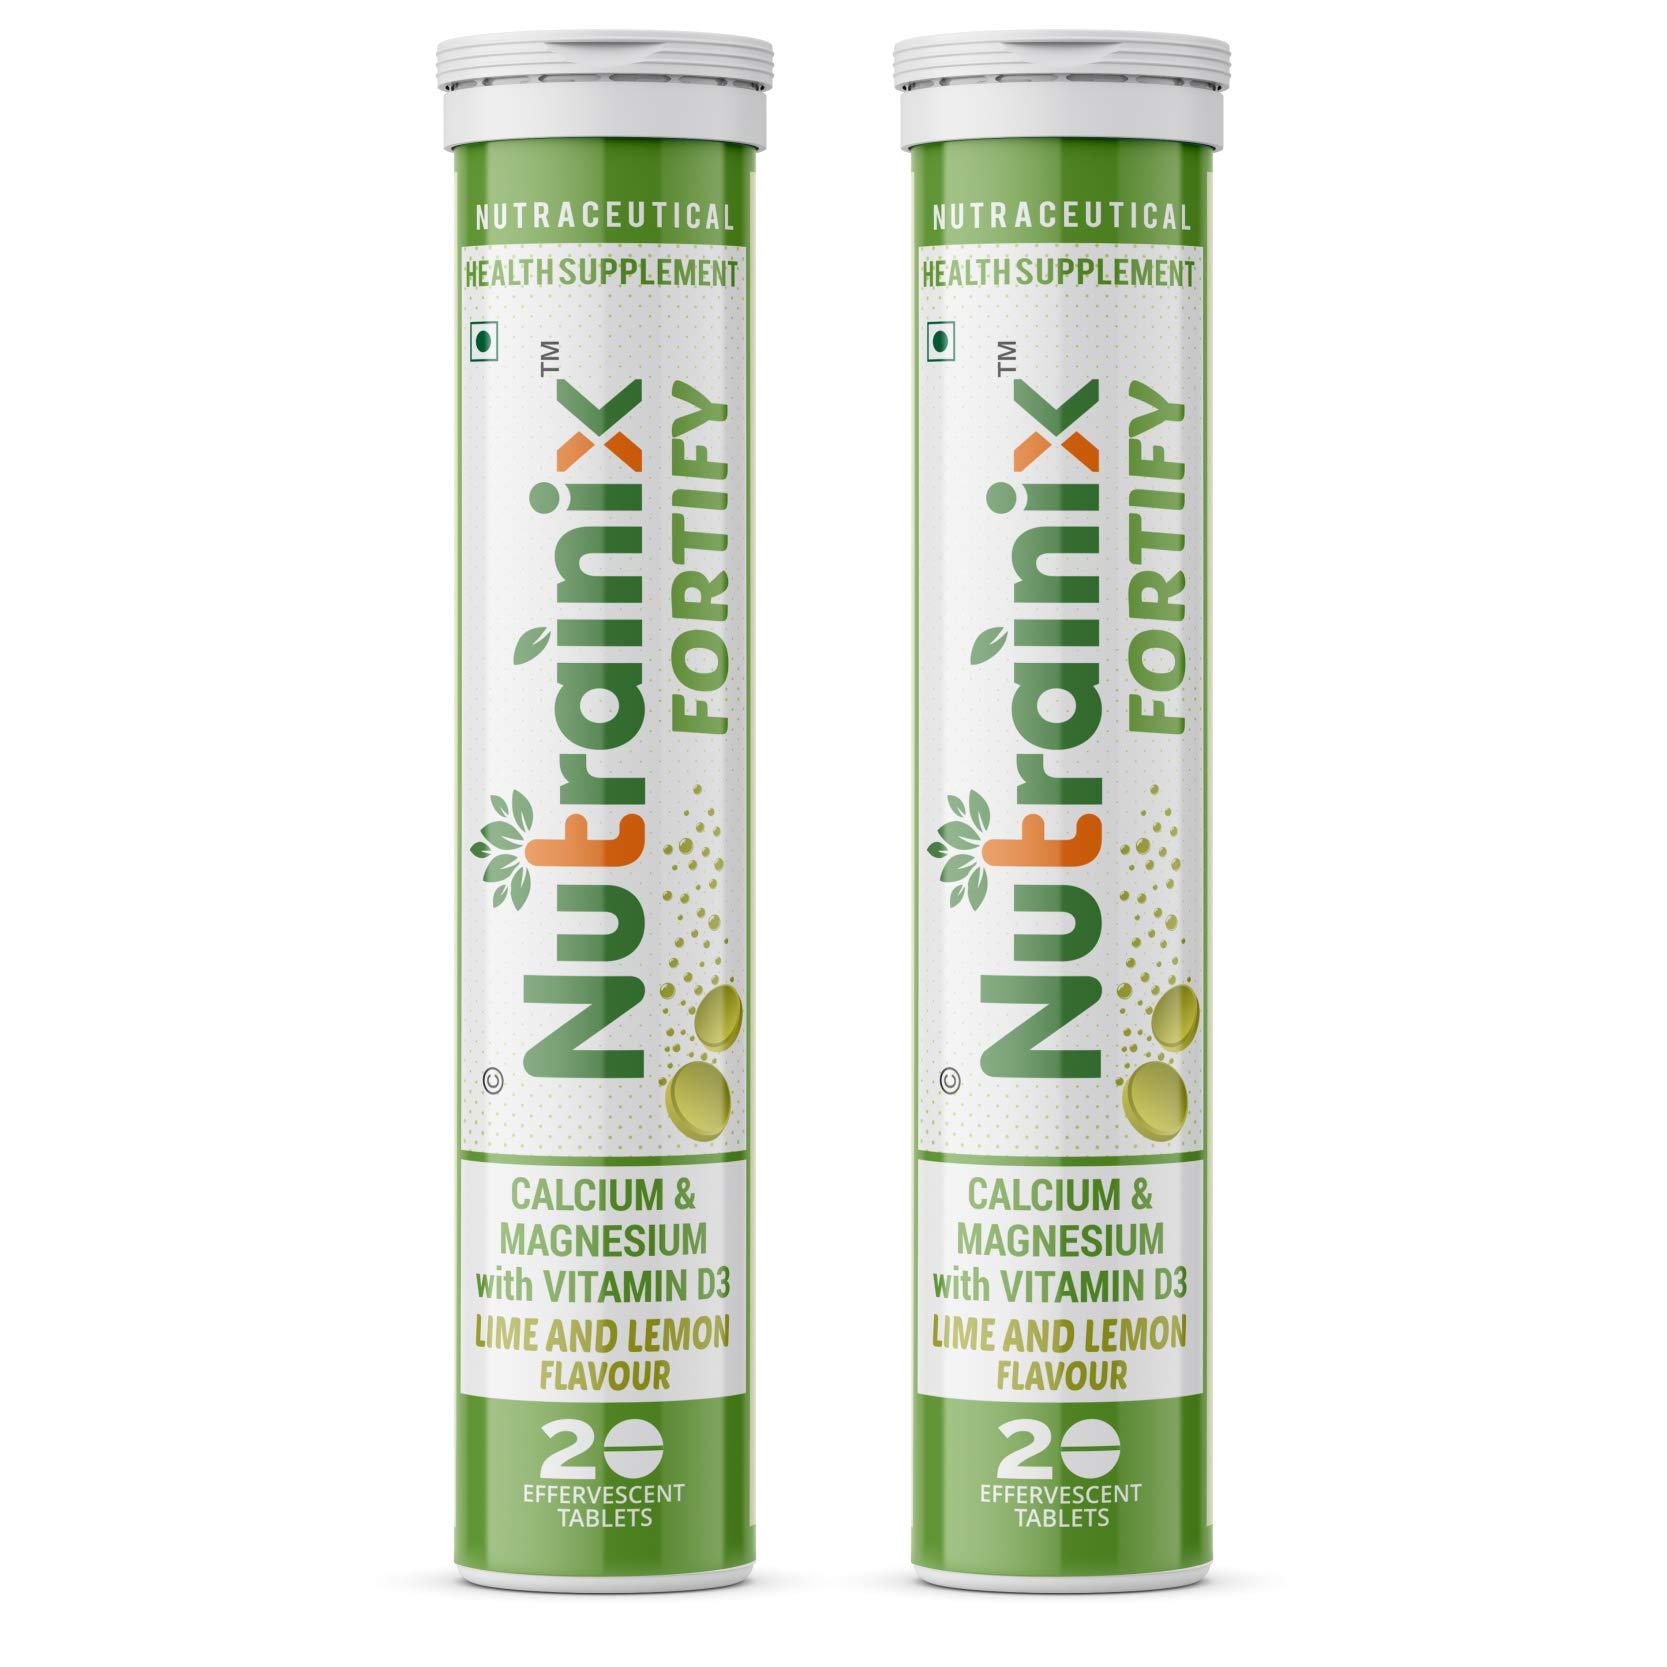 Nutrainix fortify Calcium Supplement, 500Mg Elemental Calcium, Vitamin D3 for Complete Bone Health and Support, Effervescent Tablets, Lime and Lemon Flavour, 40 count